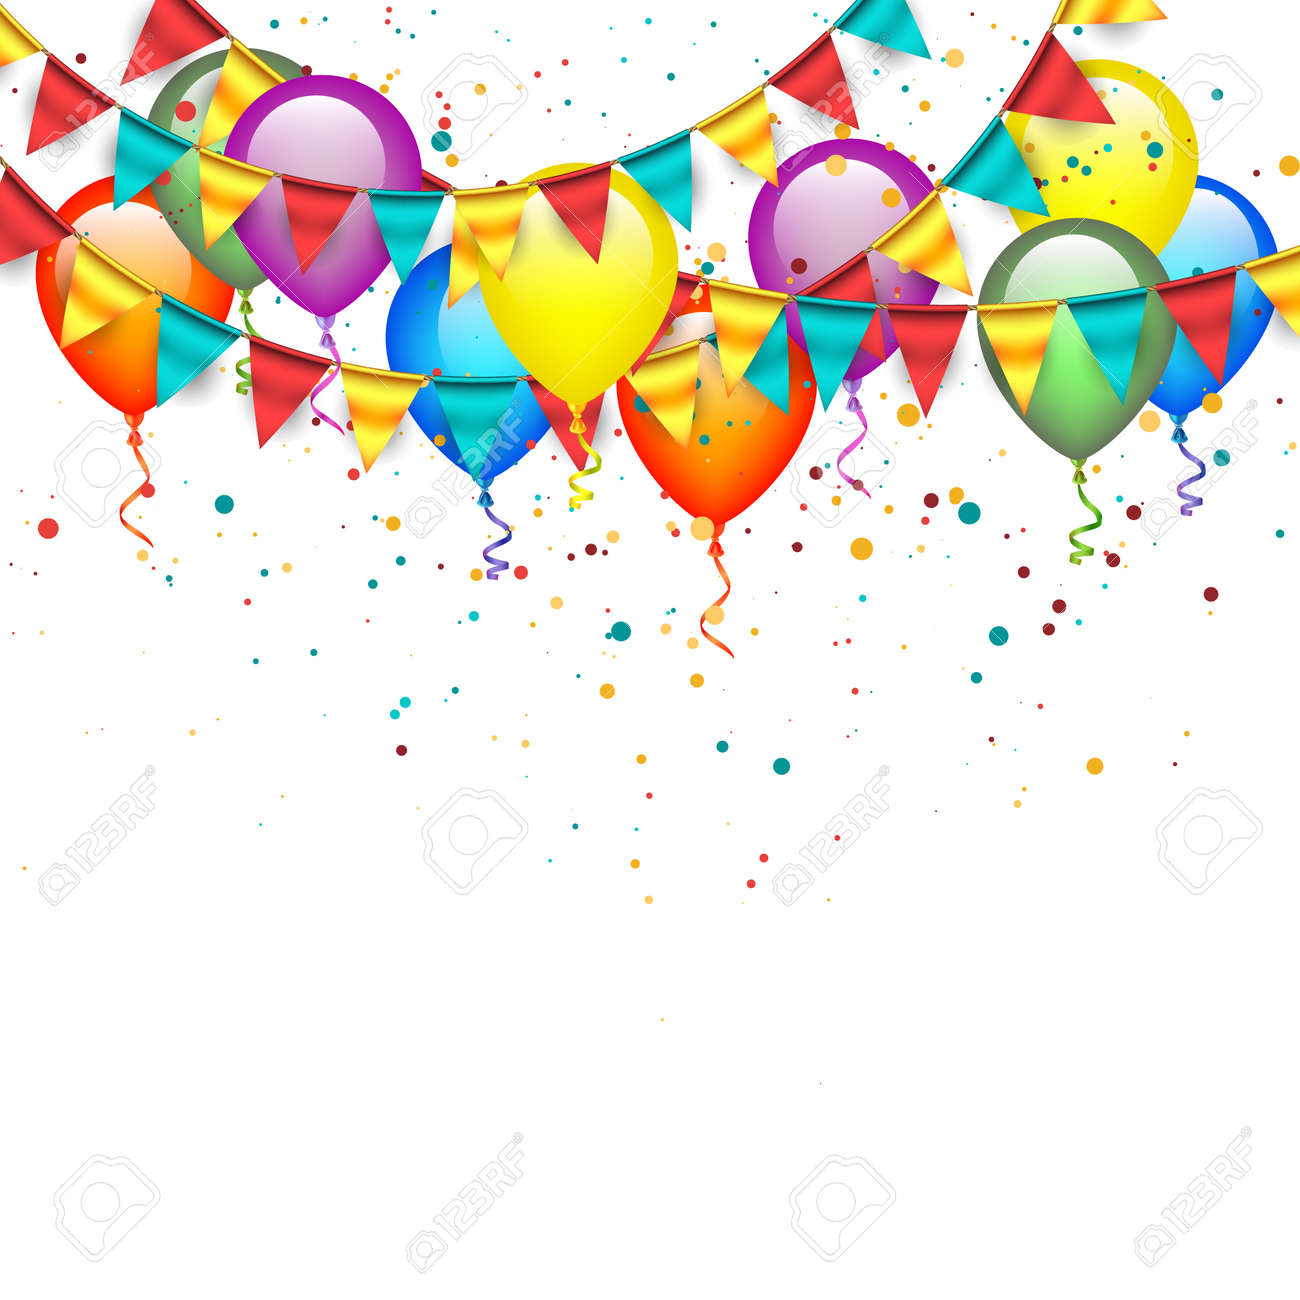 Balloons with Garlands - 43577396